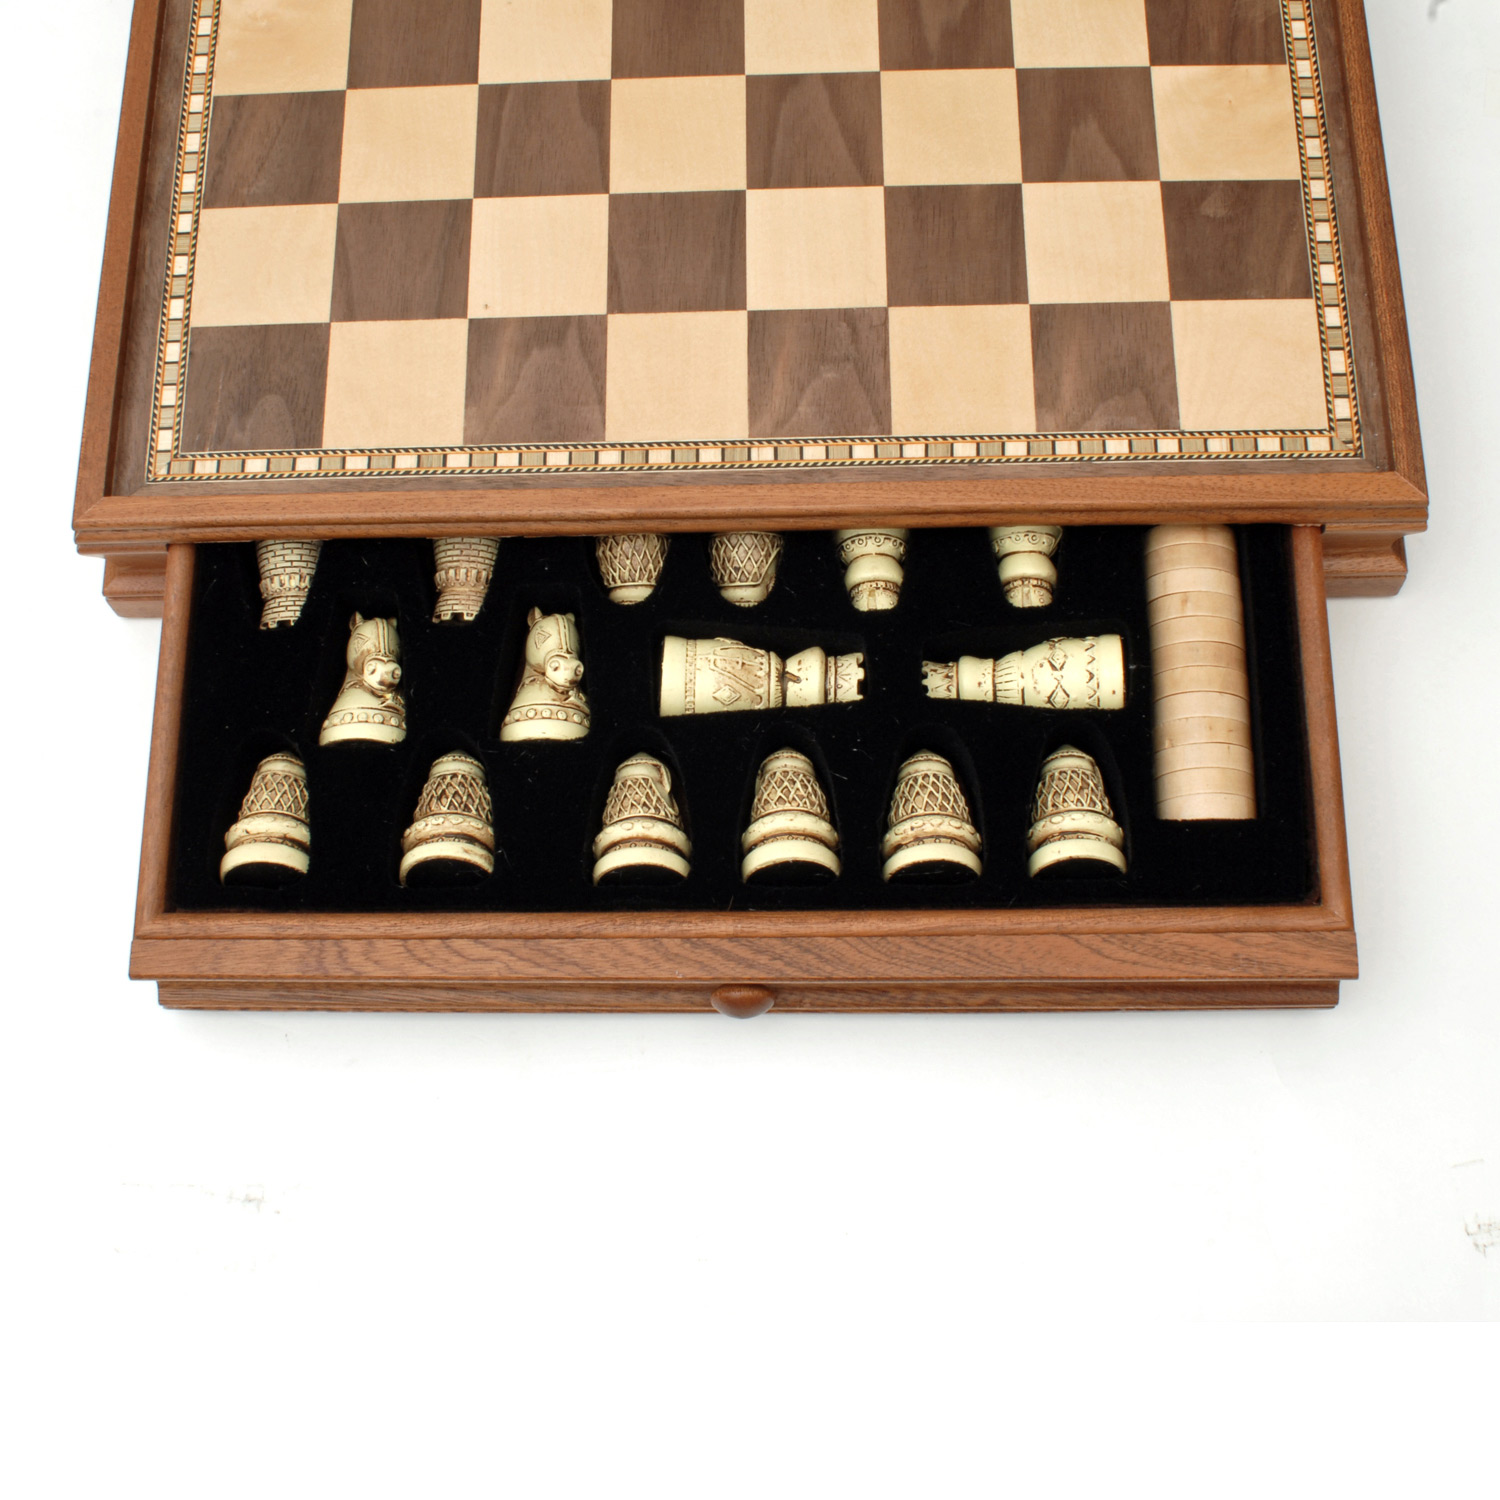 Chess Board Sale Medieval Chess And Checkers Game Set Brown And Ivory